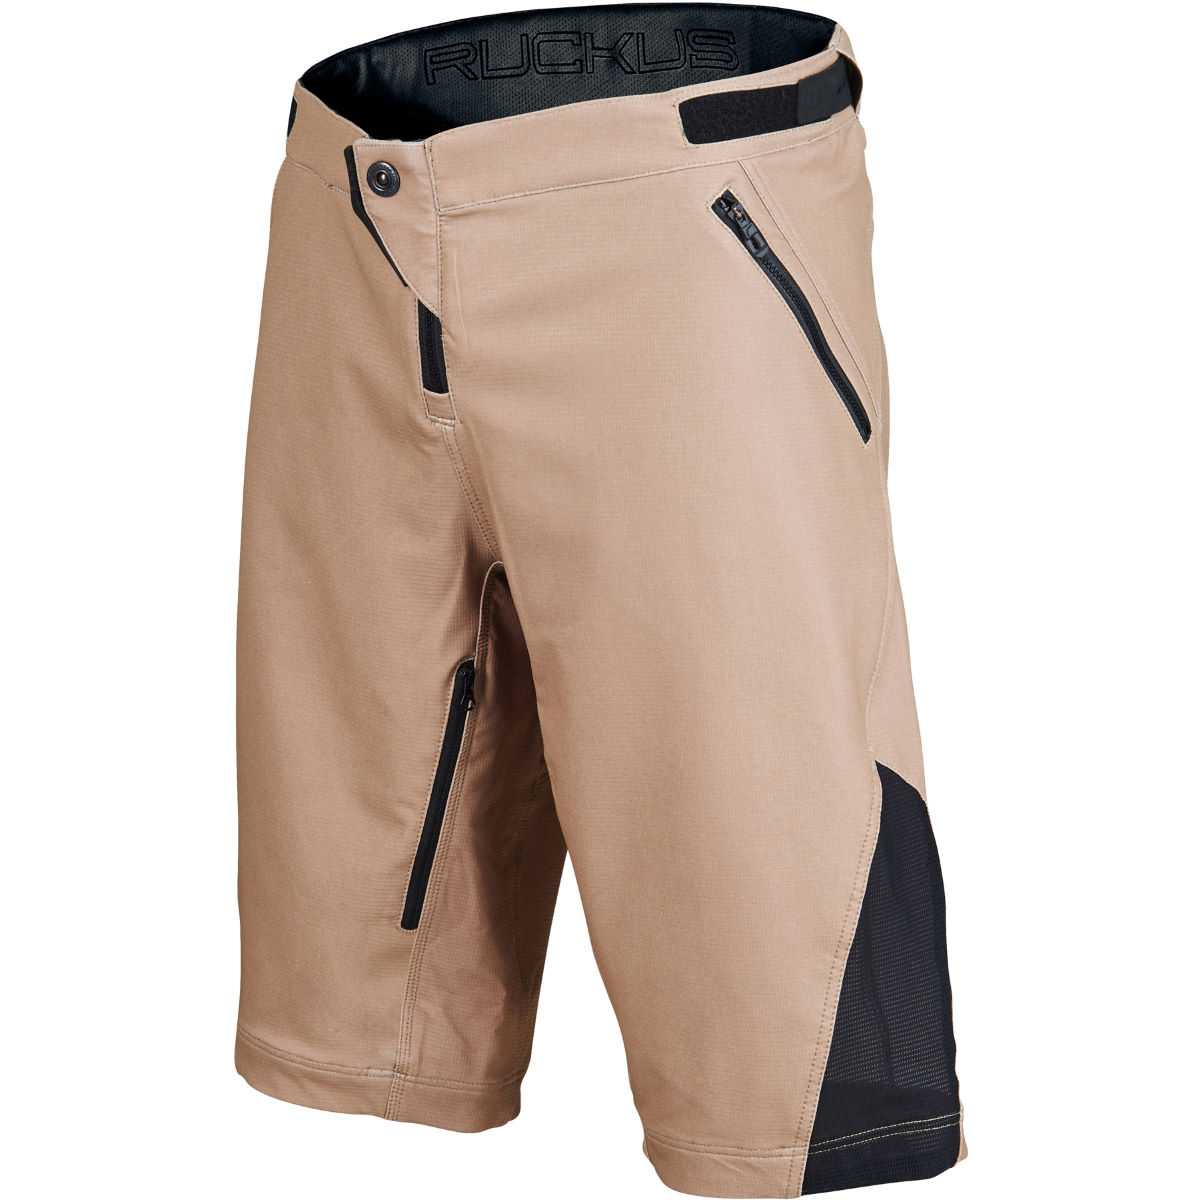 """""""Troy Lee Designs Ruckus Shorts - 32"""""""" Sand 